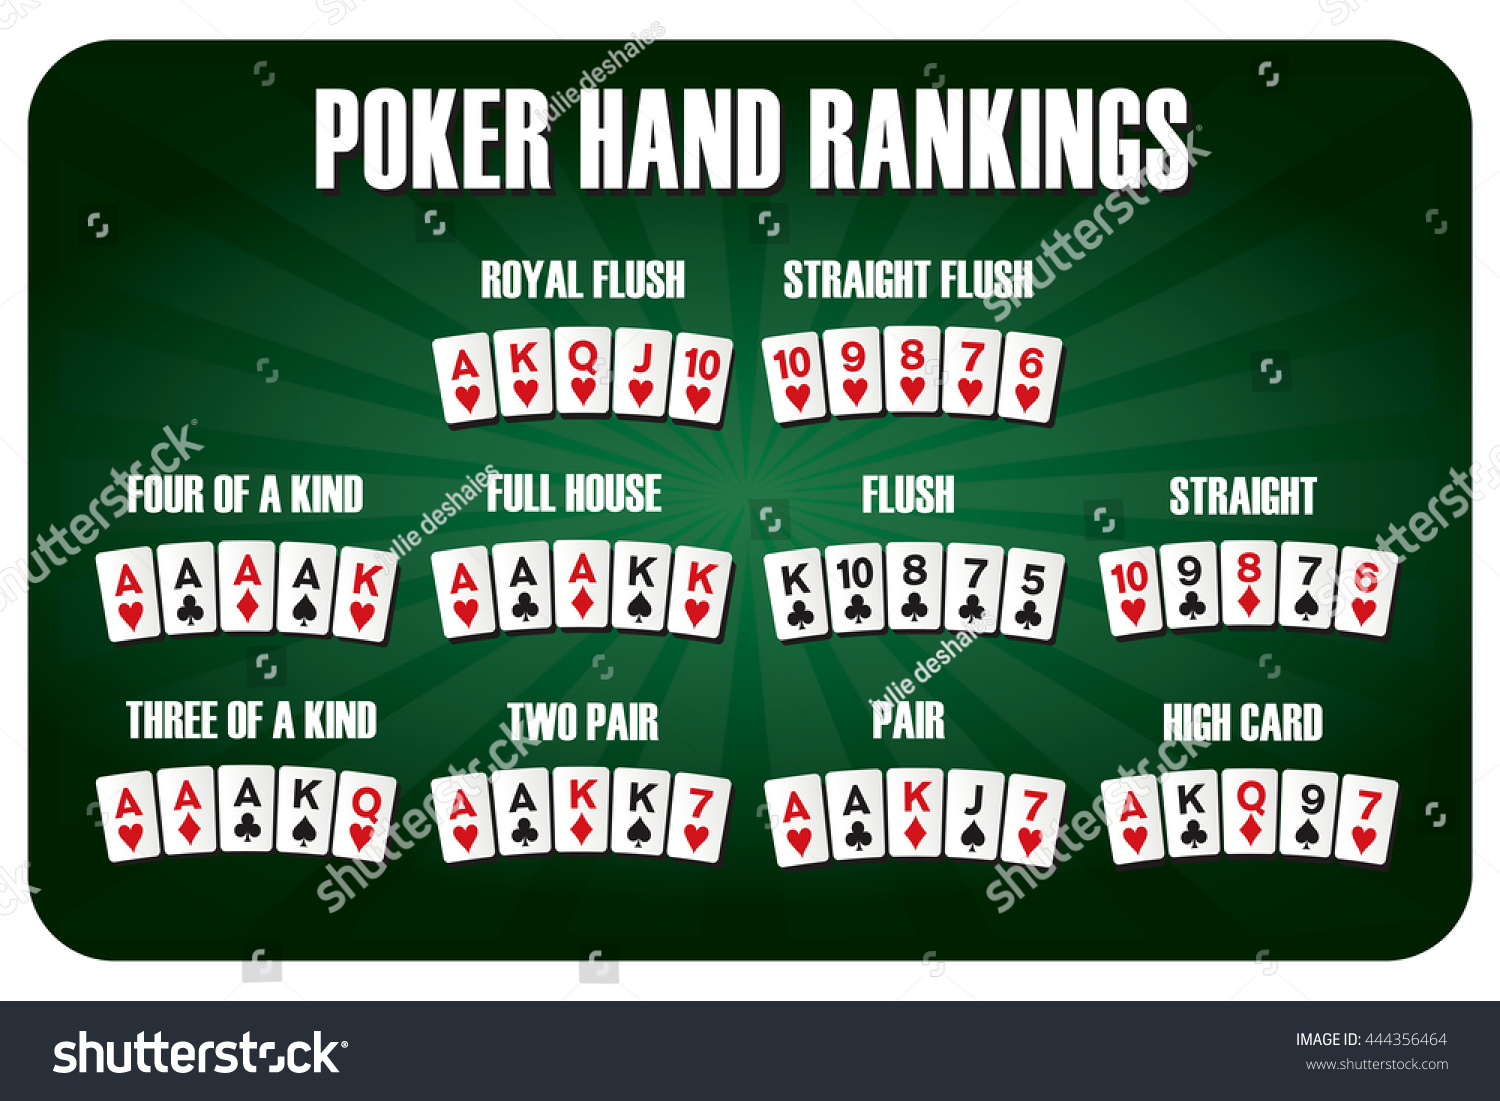 How to play texas holdem poker with chips